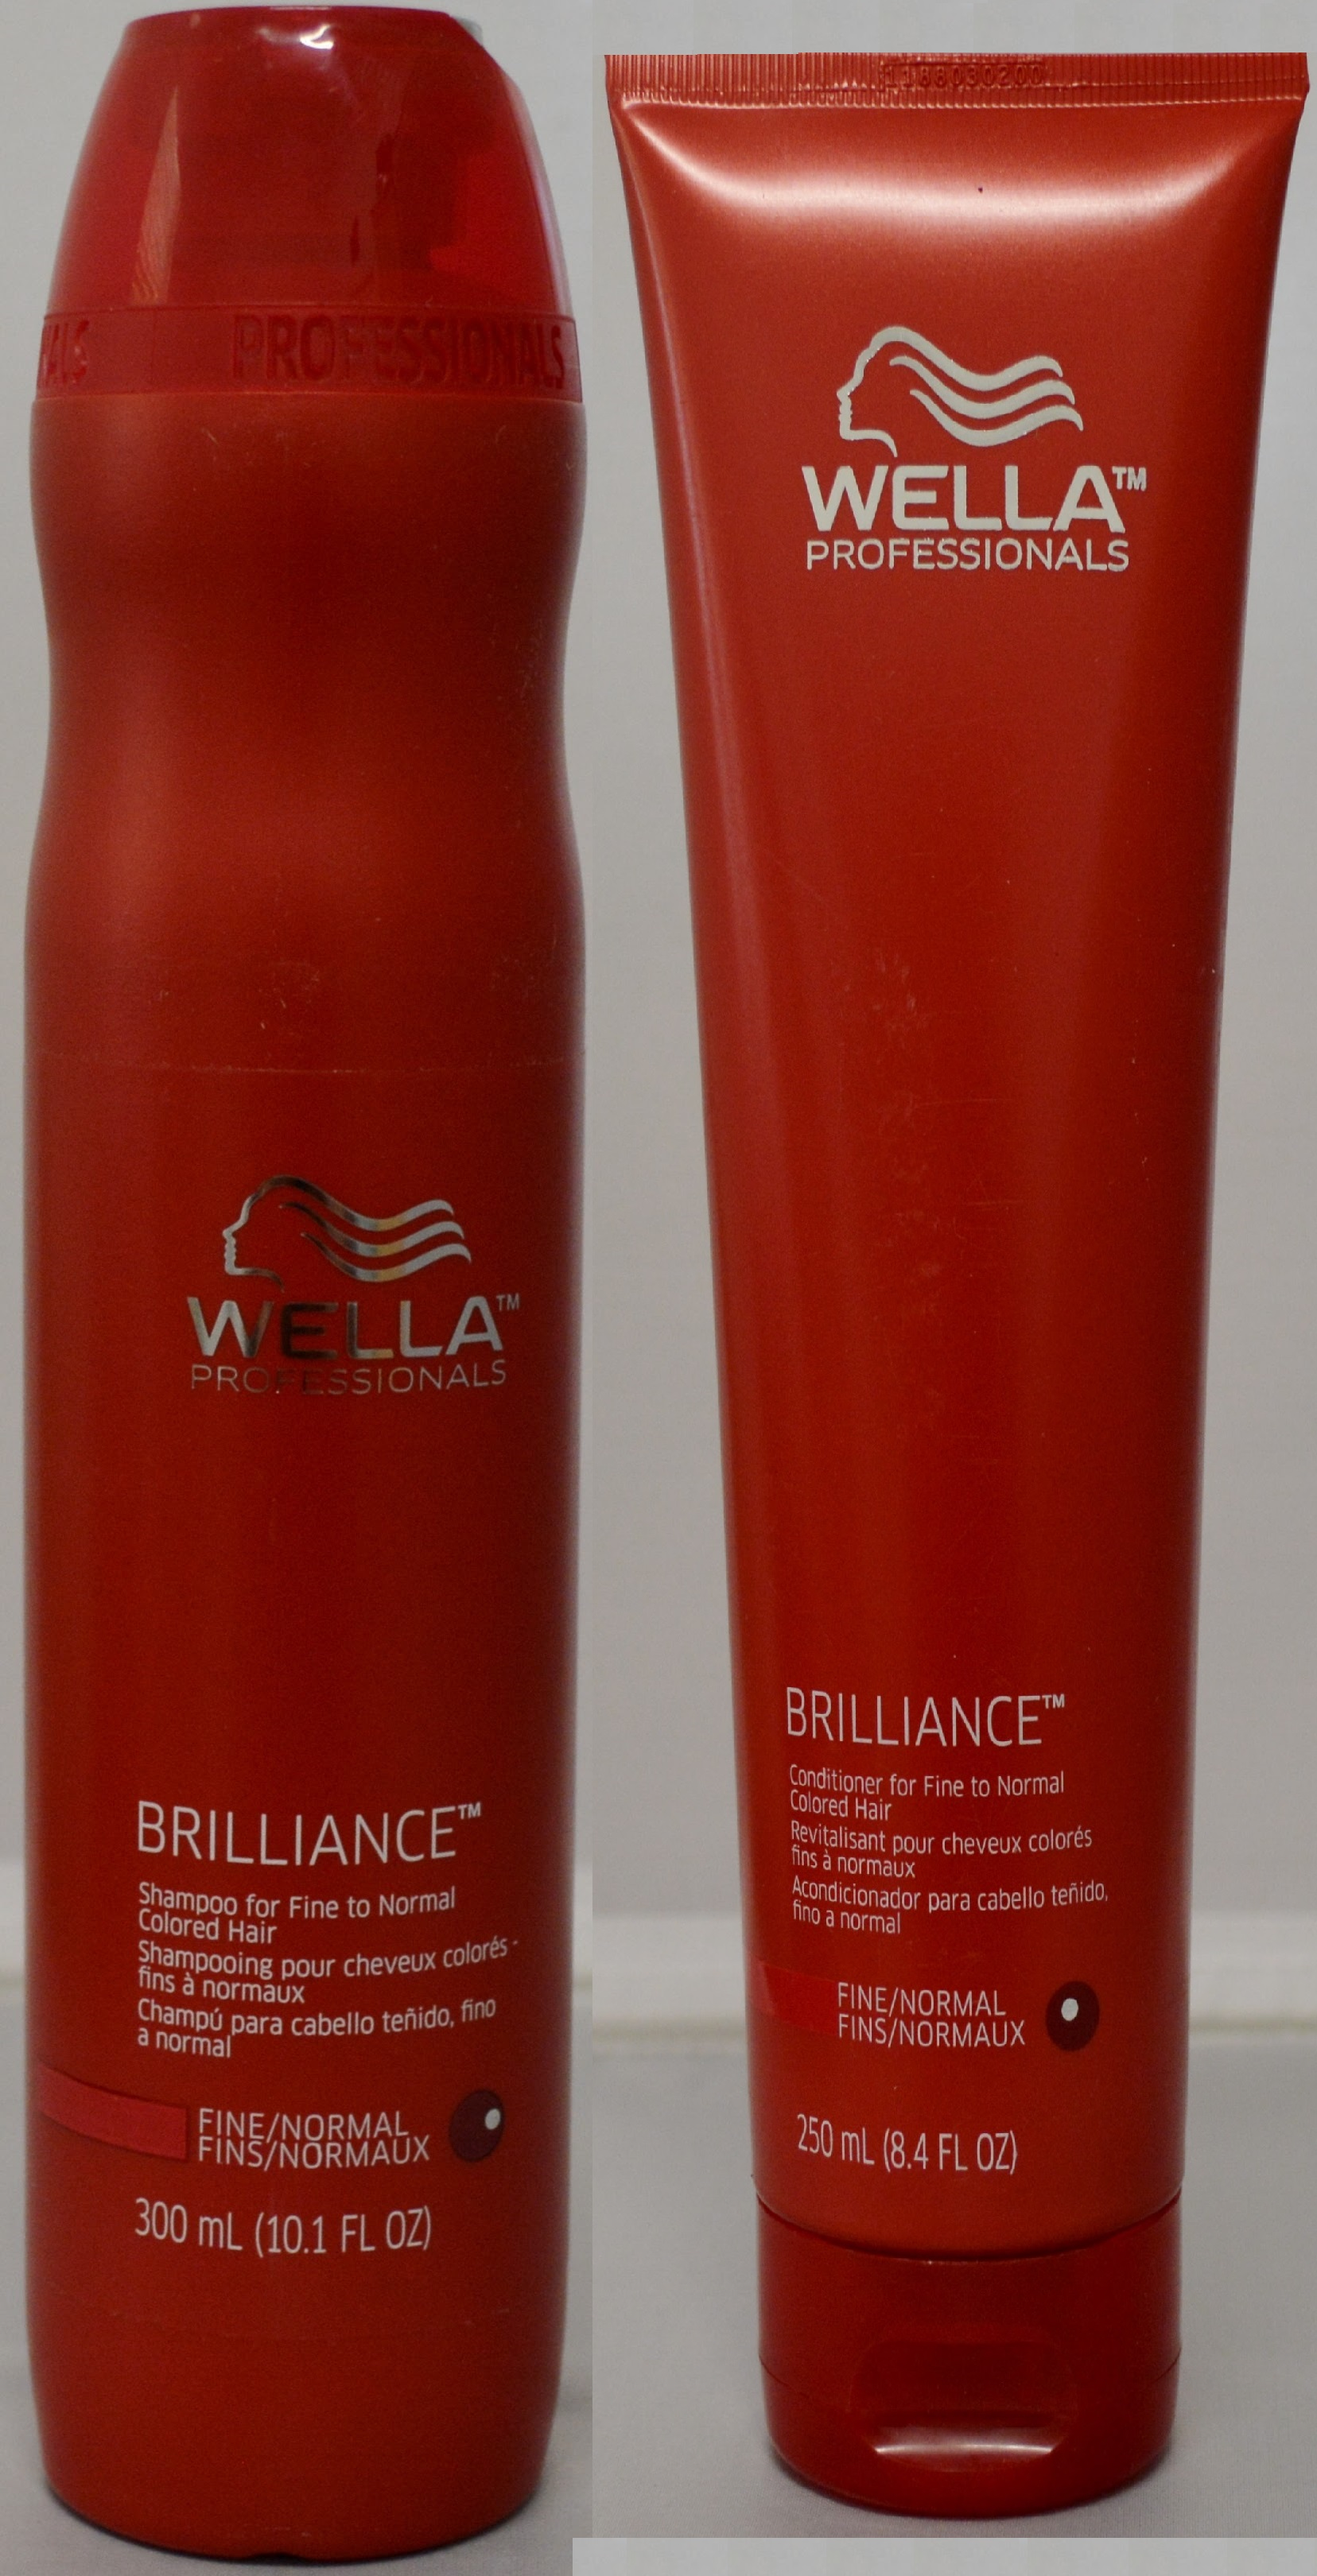 Wella Brilliance Shampoo 10.1oz & Conditioner 8.4oz for Fine to Normal Colored Hair (2 pack)